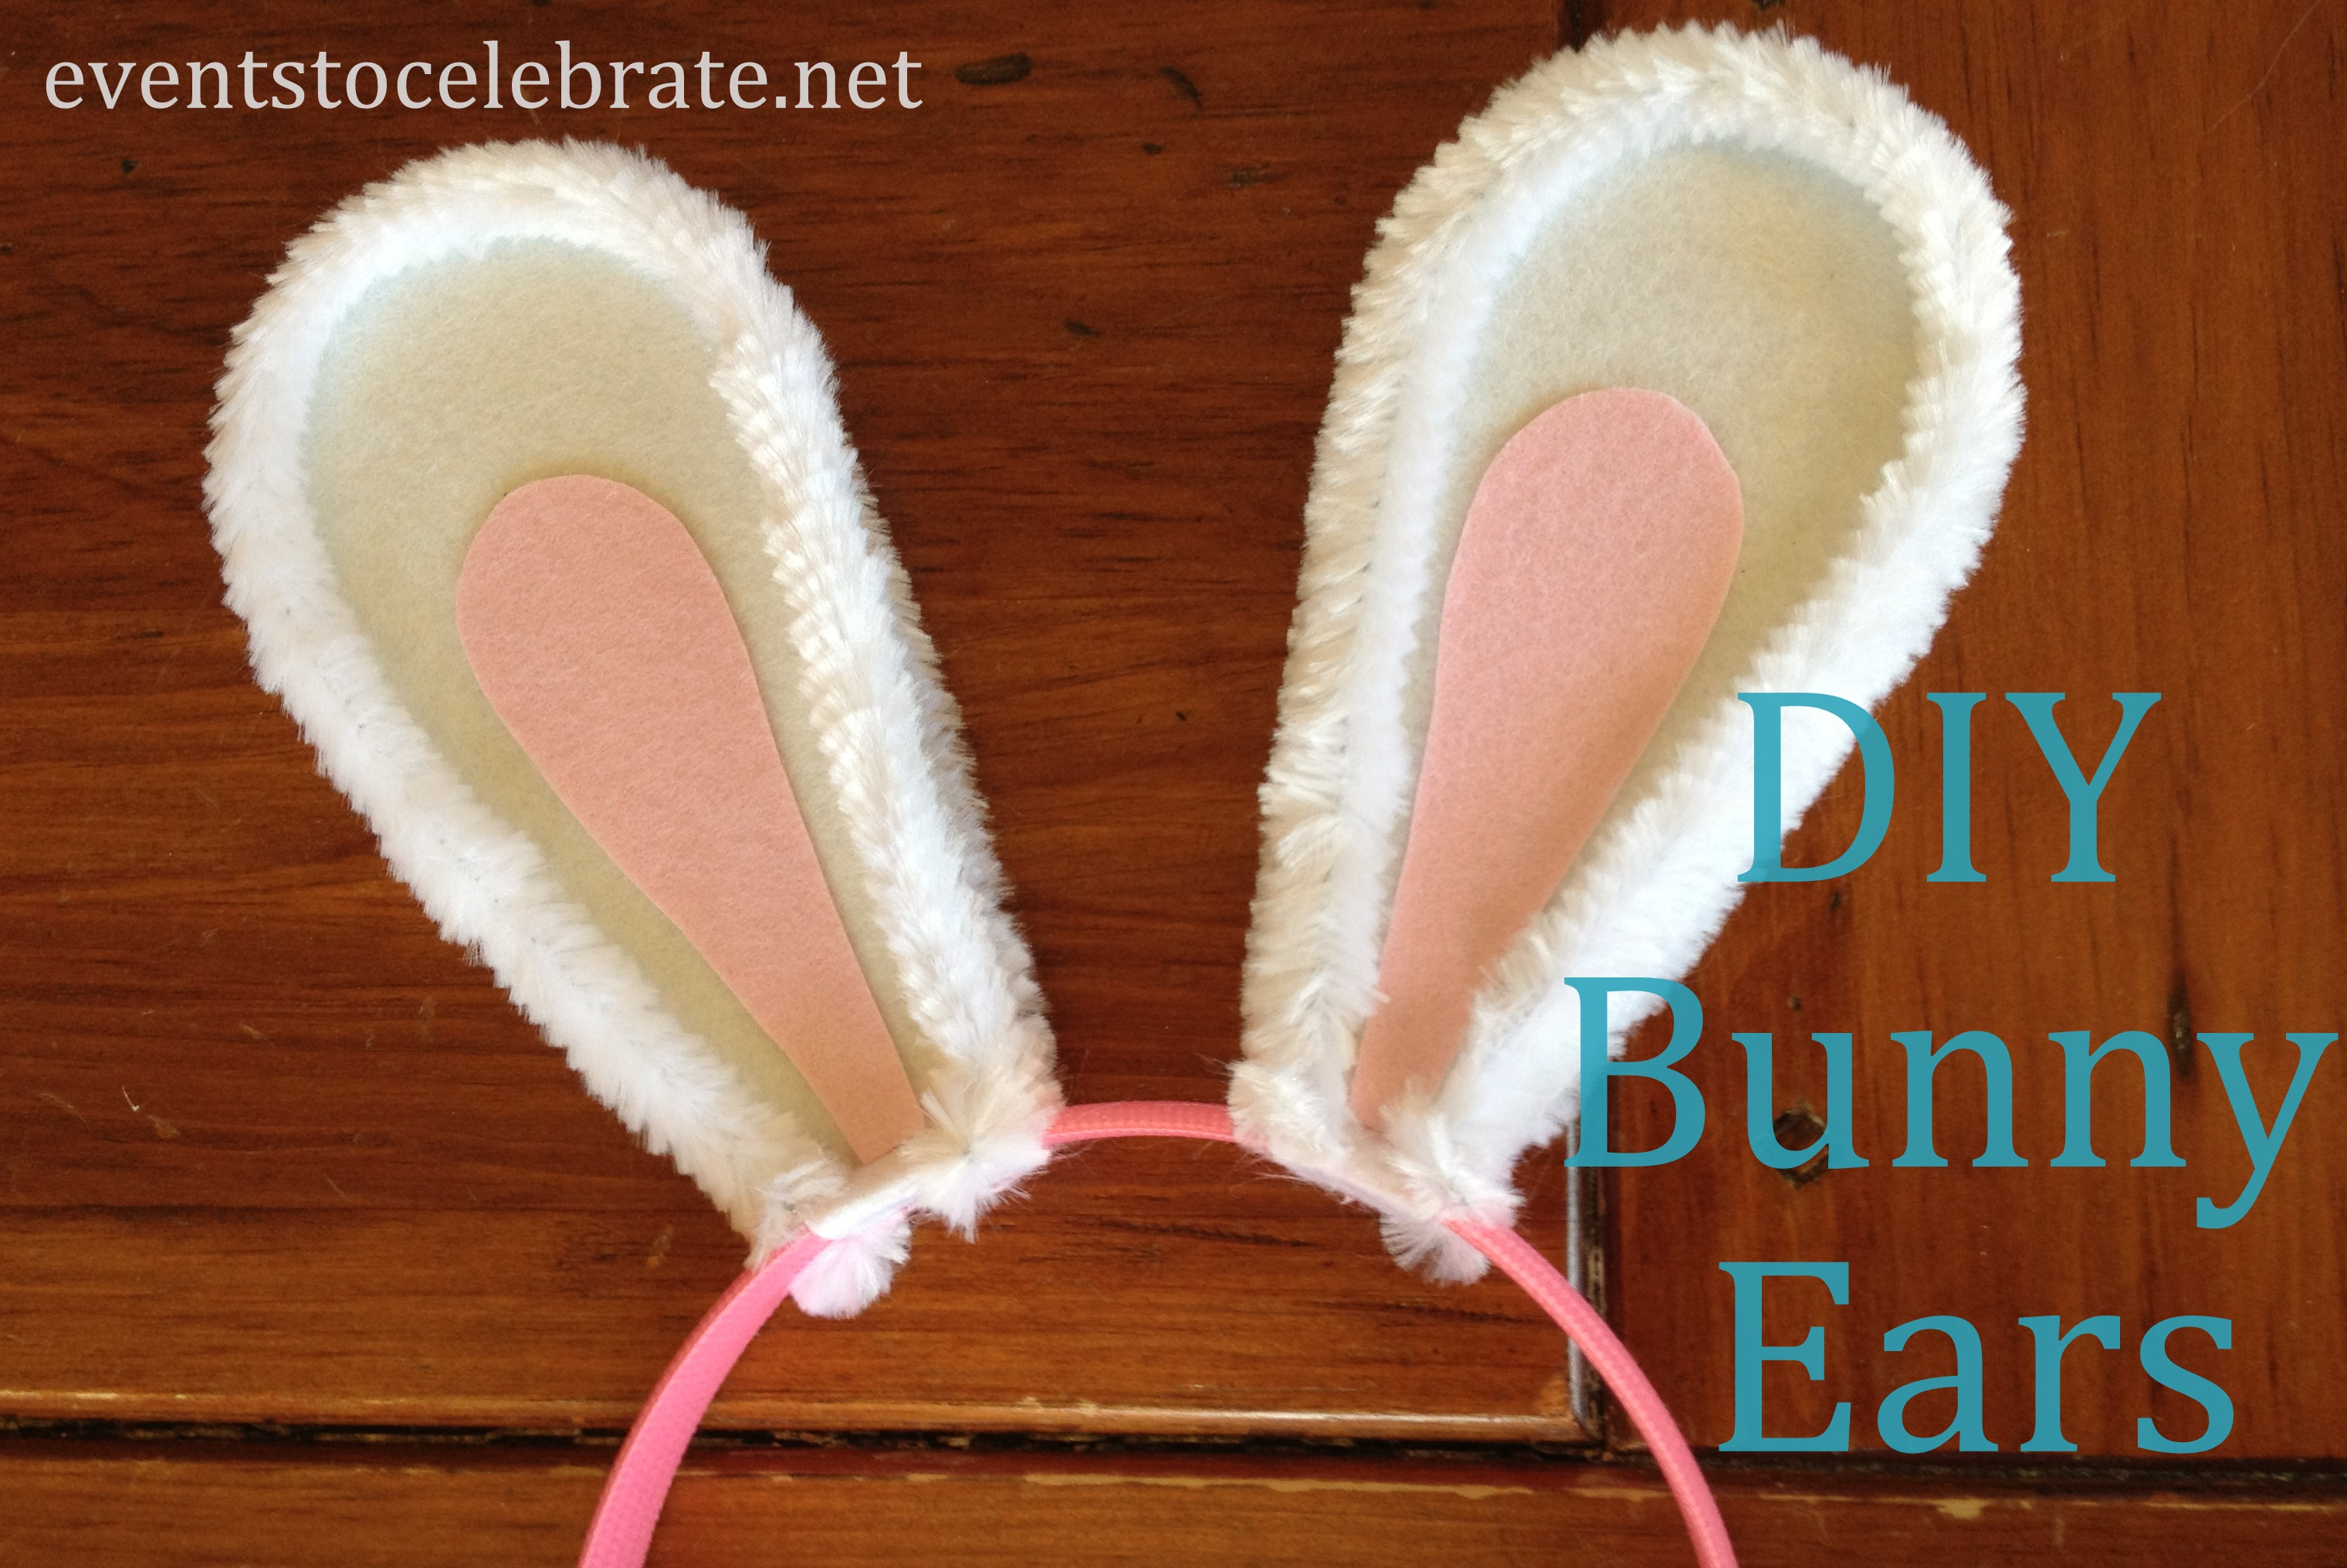 Easter crafts diy bunny ears events to celebrate for Bunny ears headband template